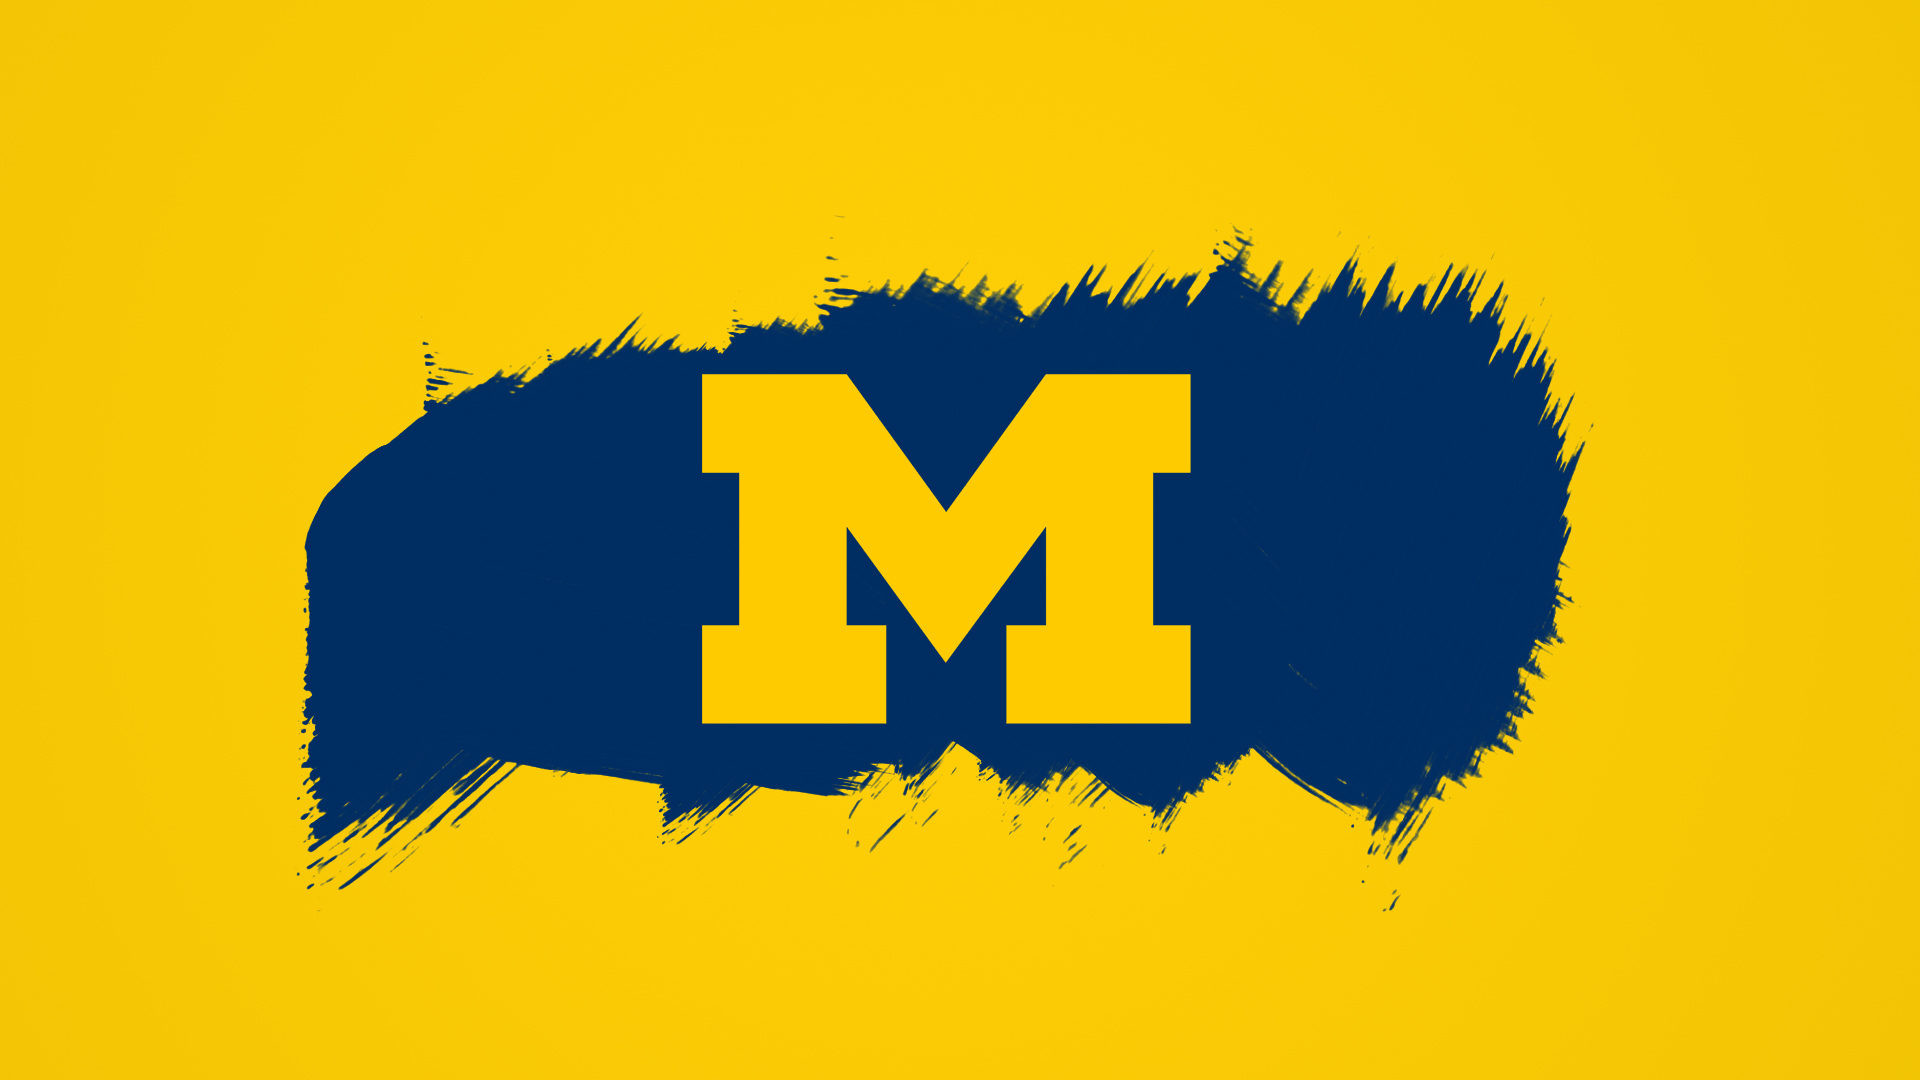 1920x1080 Michigan Wolverines Football Wallpapers Group × Michigan | HD Wallpapers |  Pinterest | Michigan wolverines football and Wallpaper